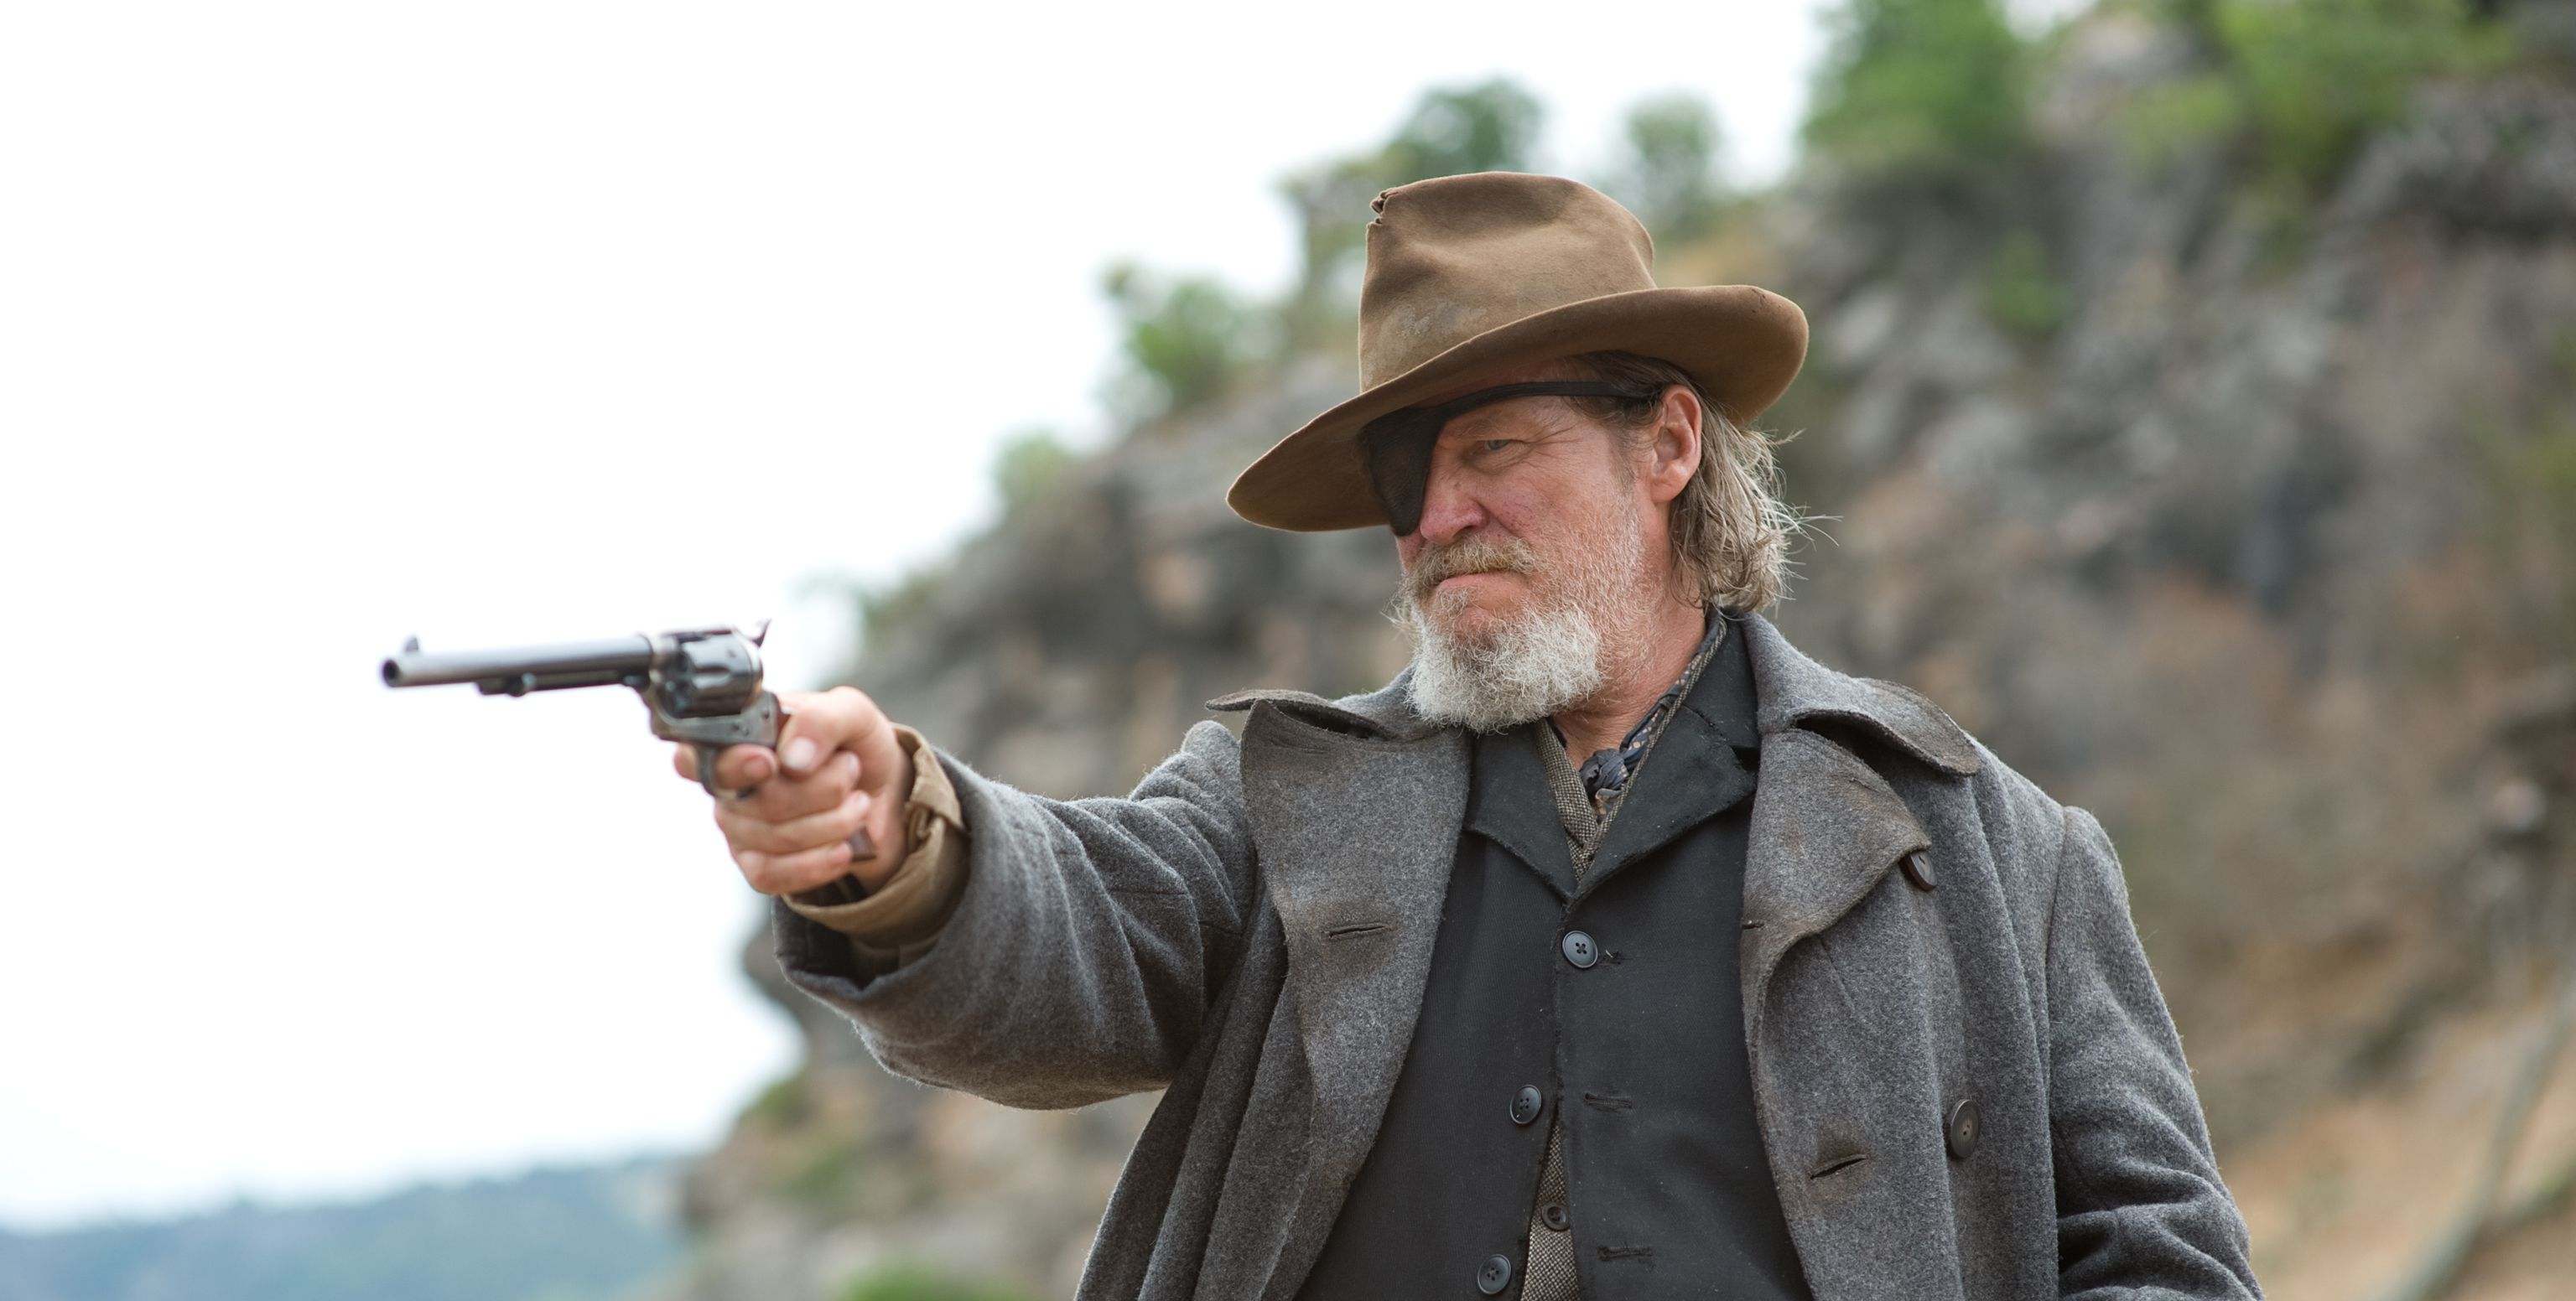 An image from True Grit